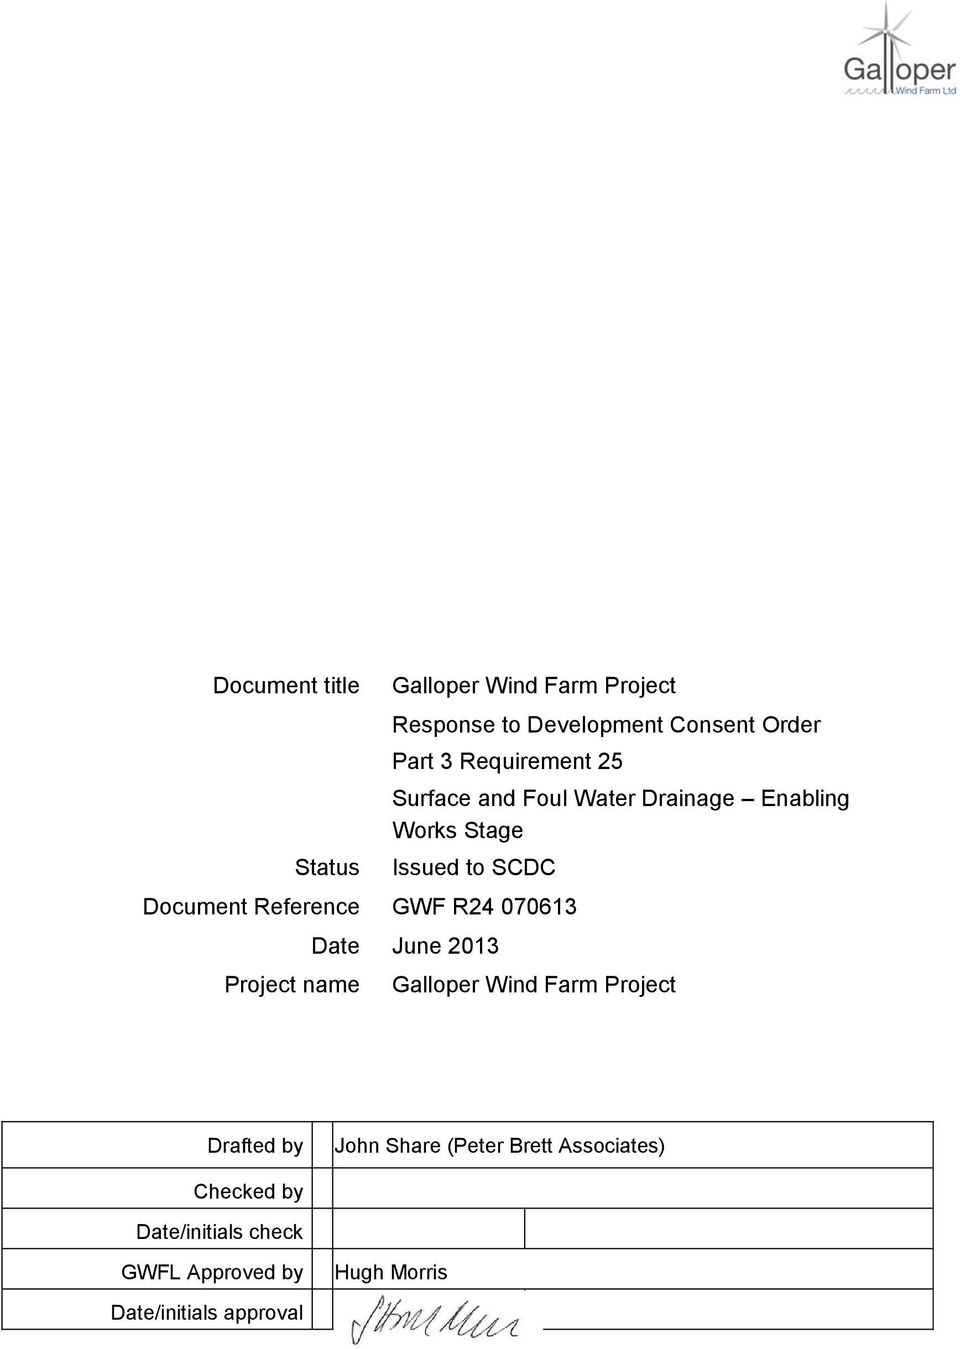 Reference GWF R24 070613 Project name Date June 2013 Galloper Wind Farm Project Drafted by John